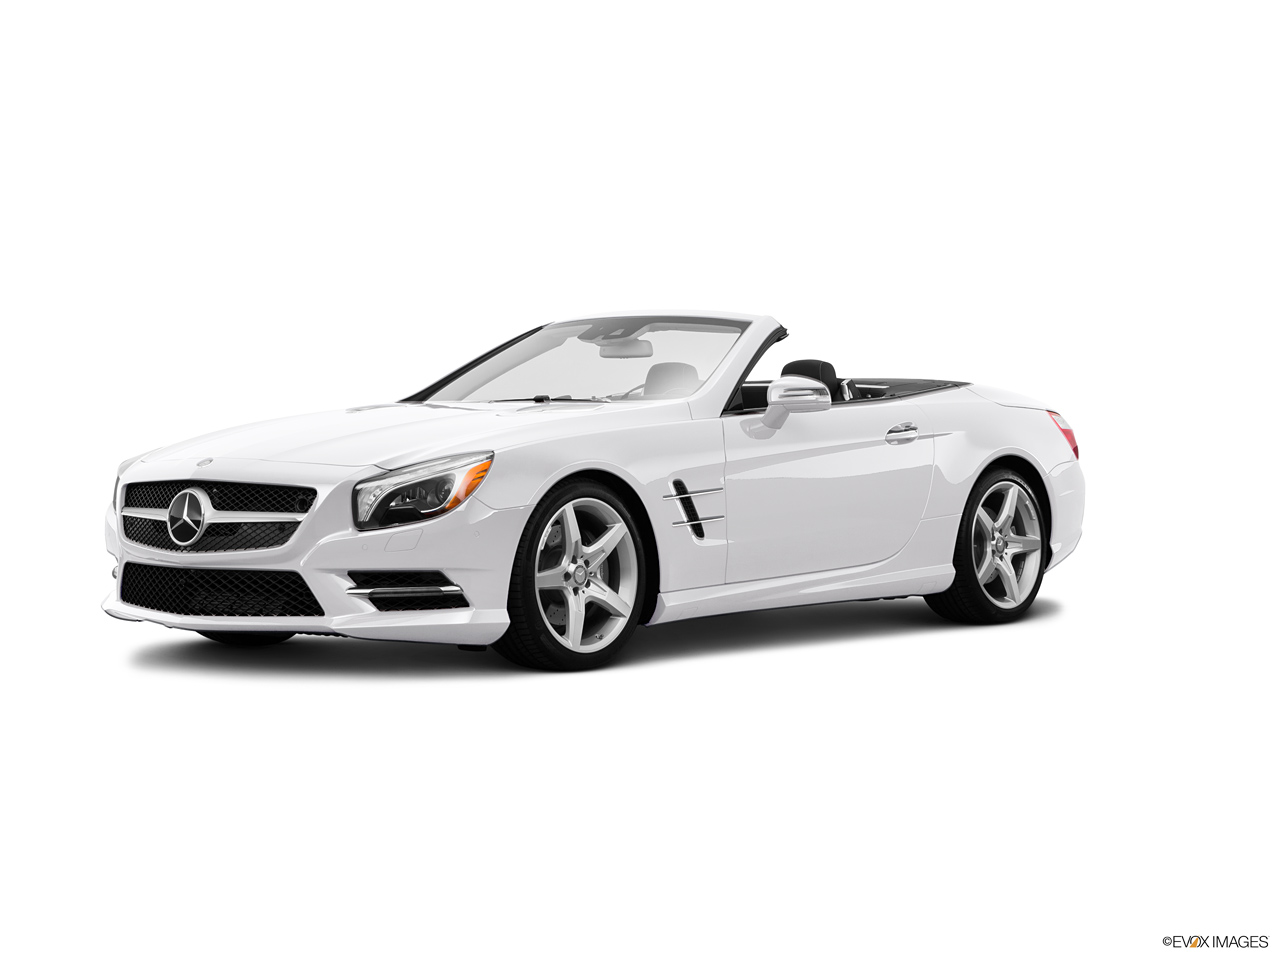 Mercedes benz sl class 2016 sl 500 in uae new car prices for Mercedes benz sl price